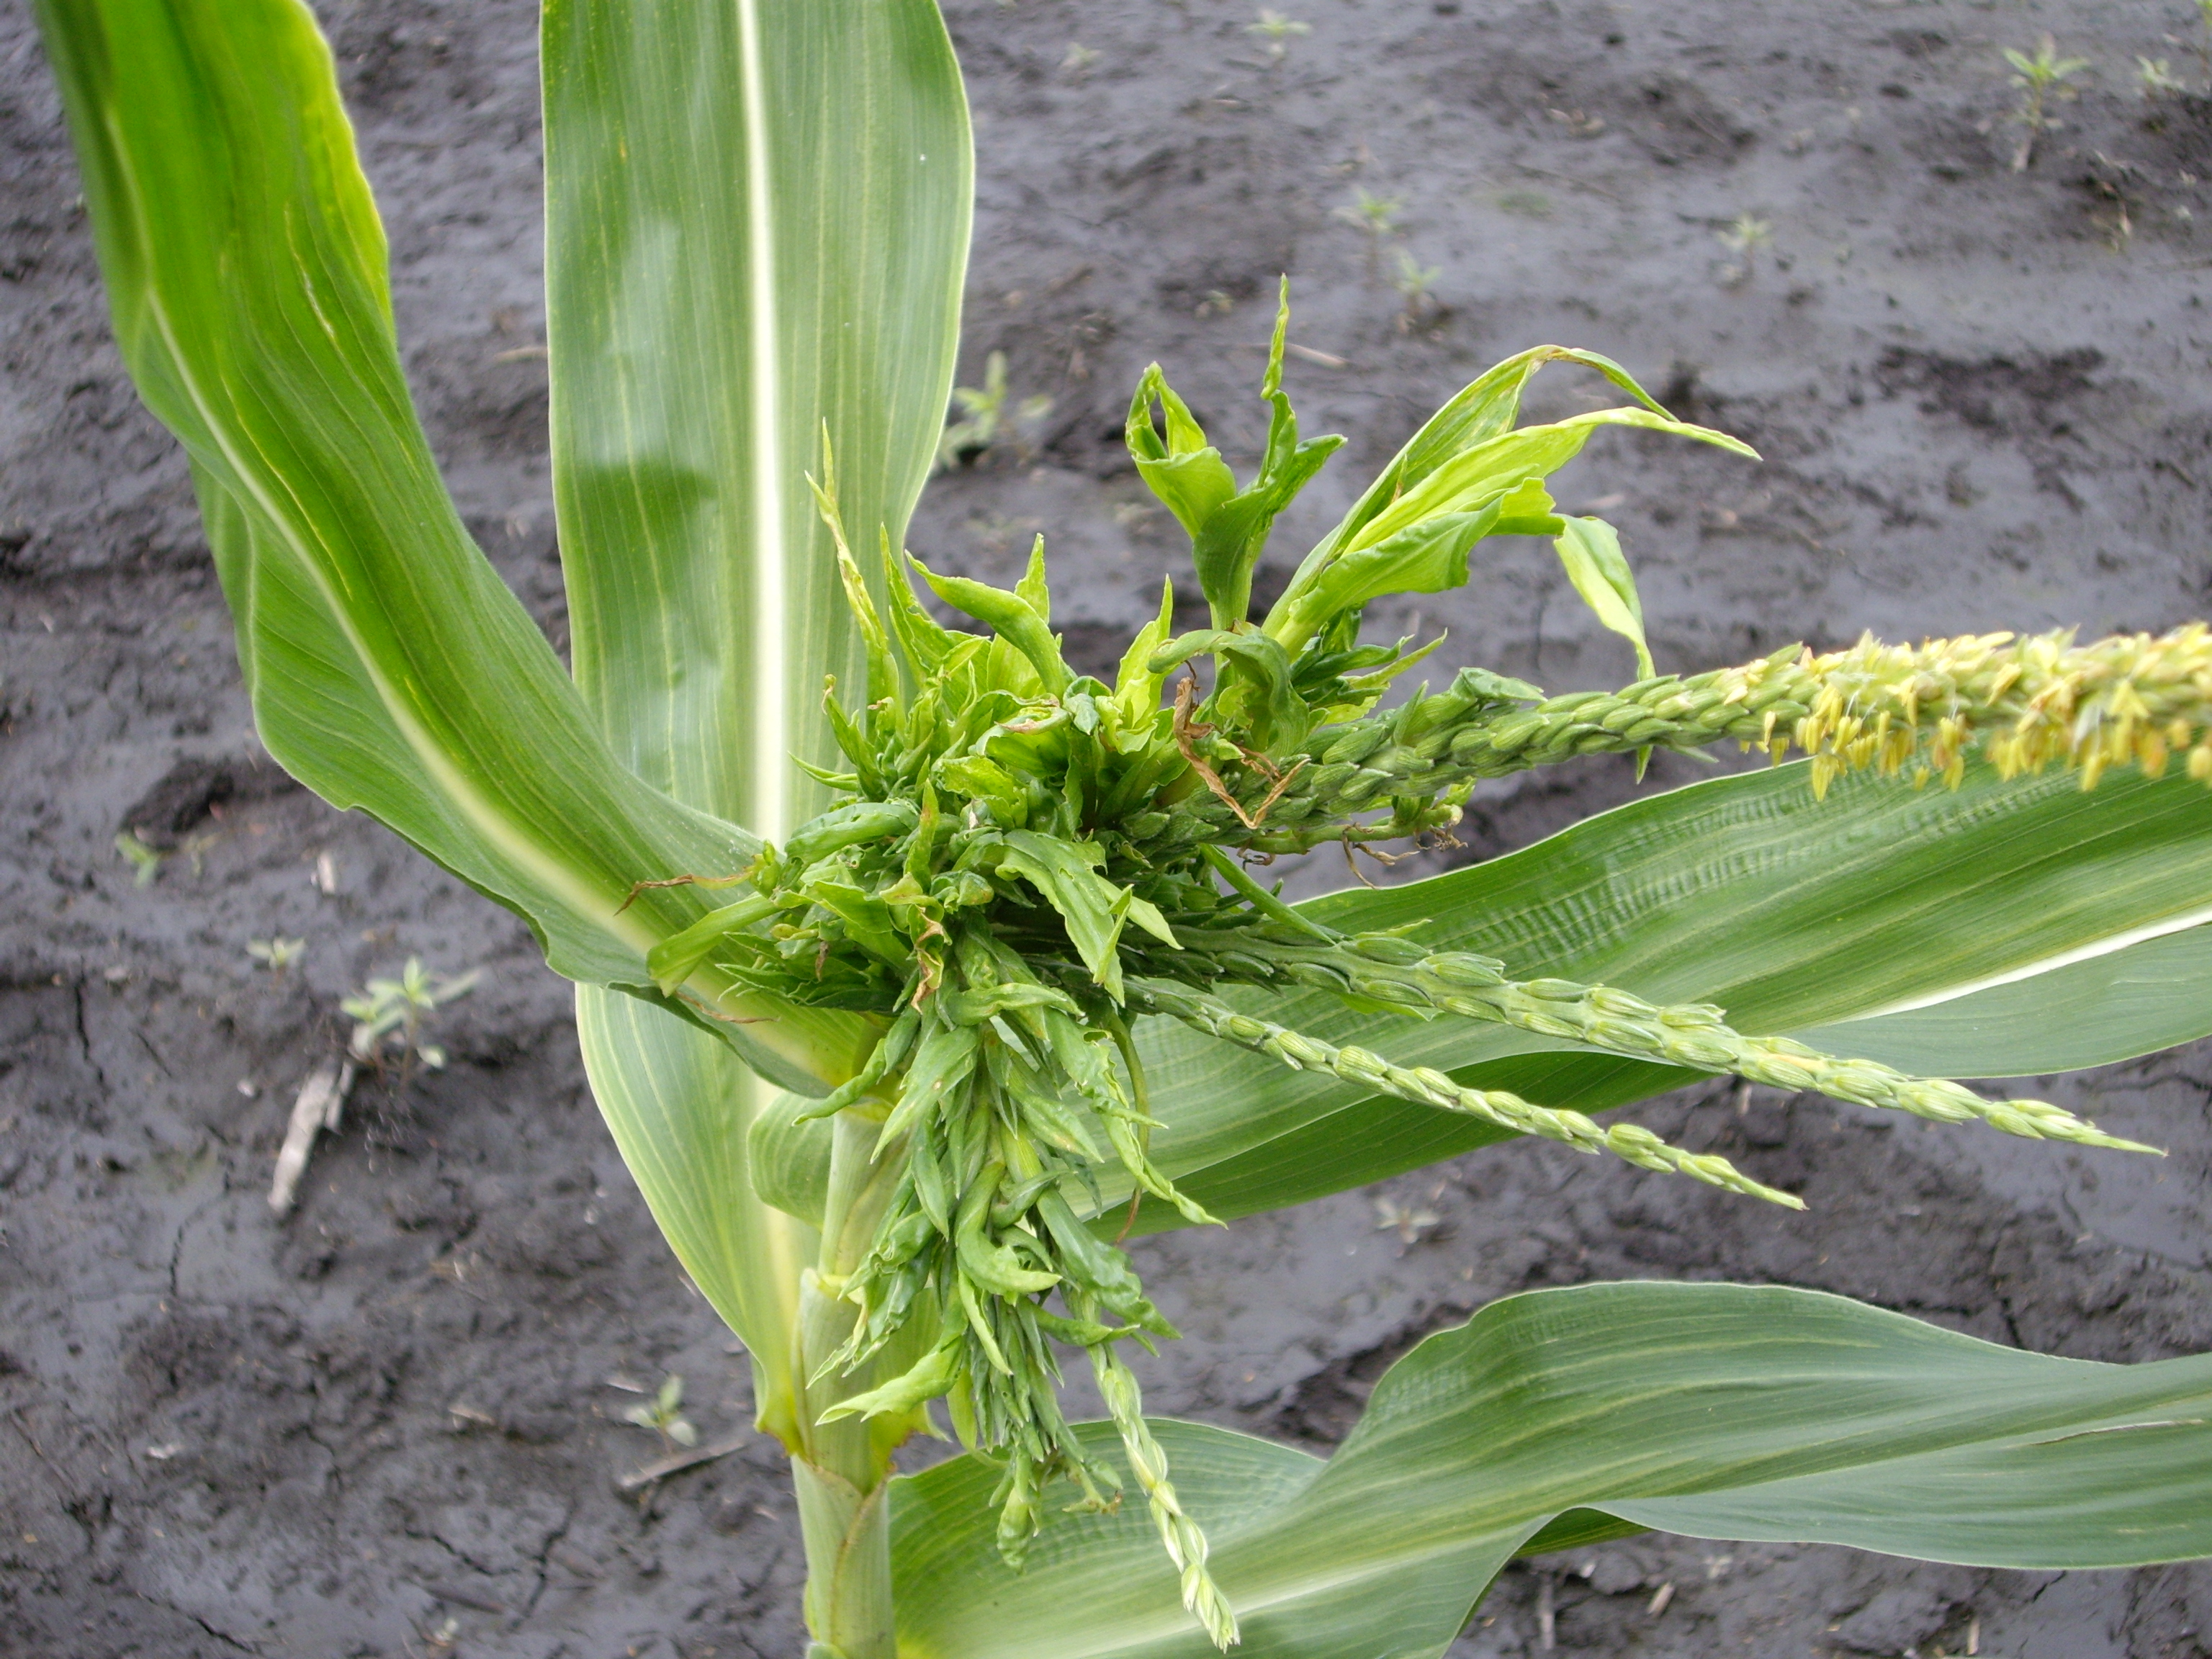 Leaves below the tassel may proliferate, resulting in a bushy appearance of the plant top.